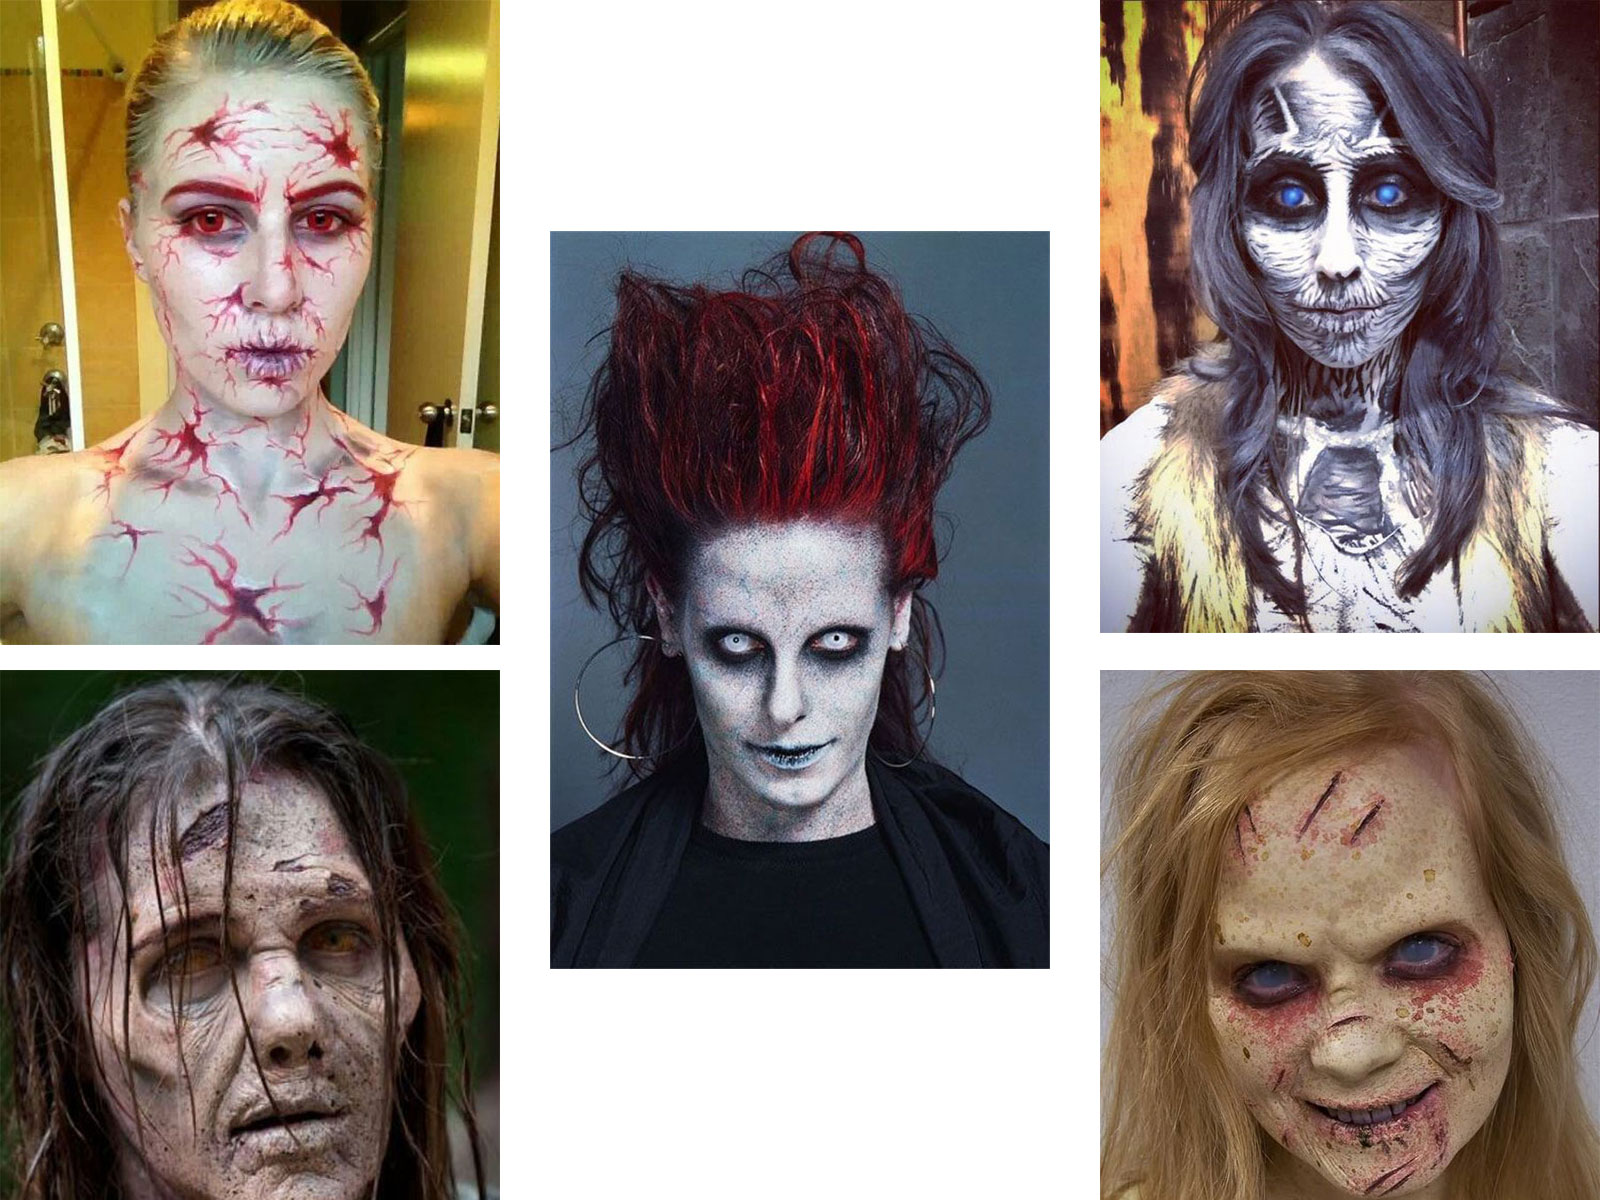 30-Very-Scary-The-Walking-Dead-Halloween-Face-Makeup-Ideas-Looks-2019-F